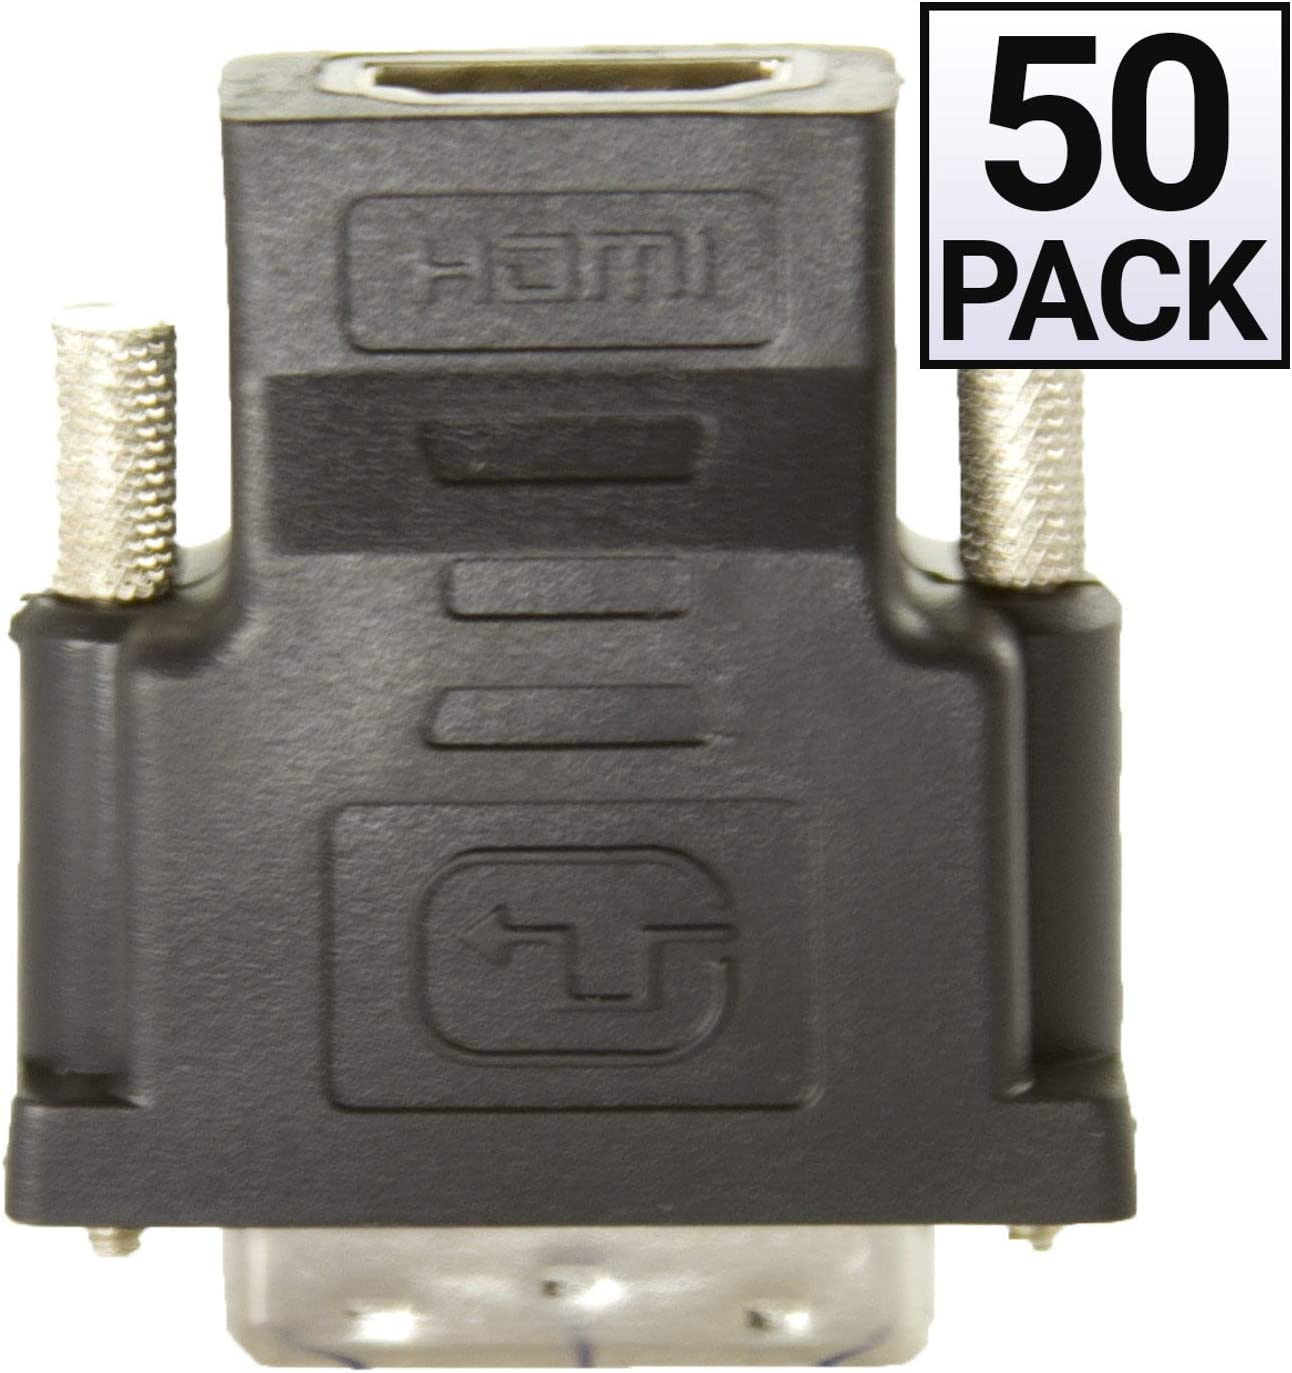 50 Pack HDMI to DVI Adapter GOWOS HDMI Female to//from DVI Male